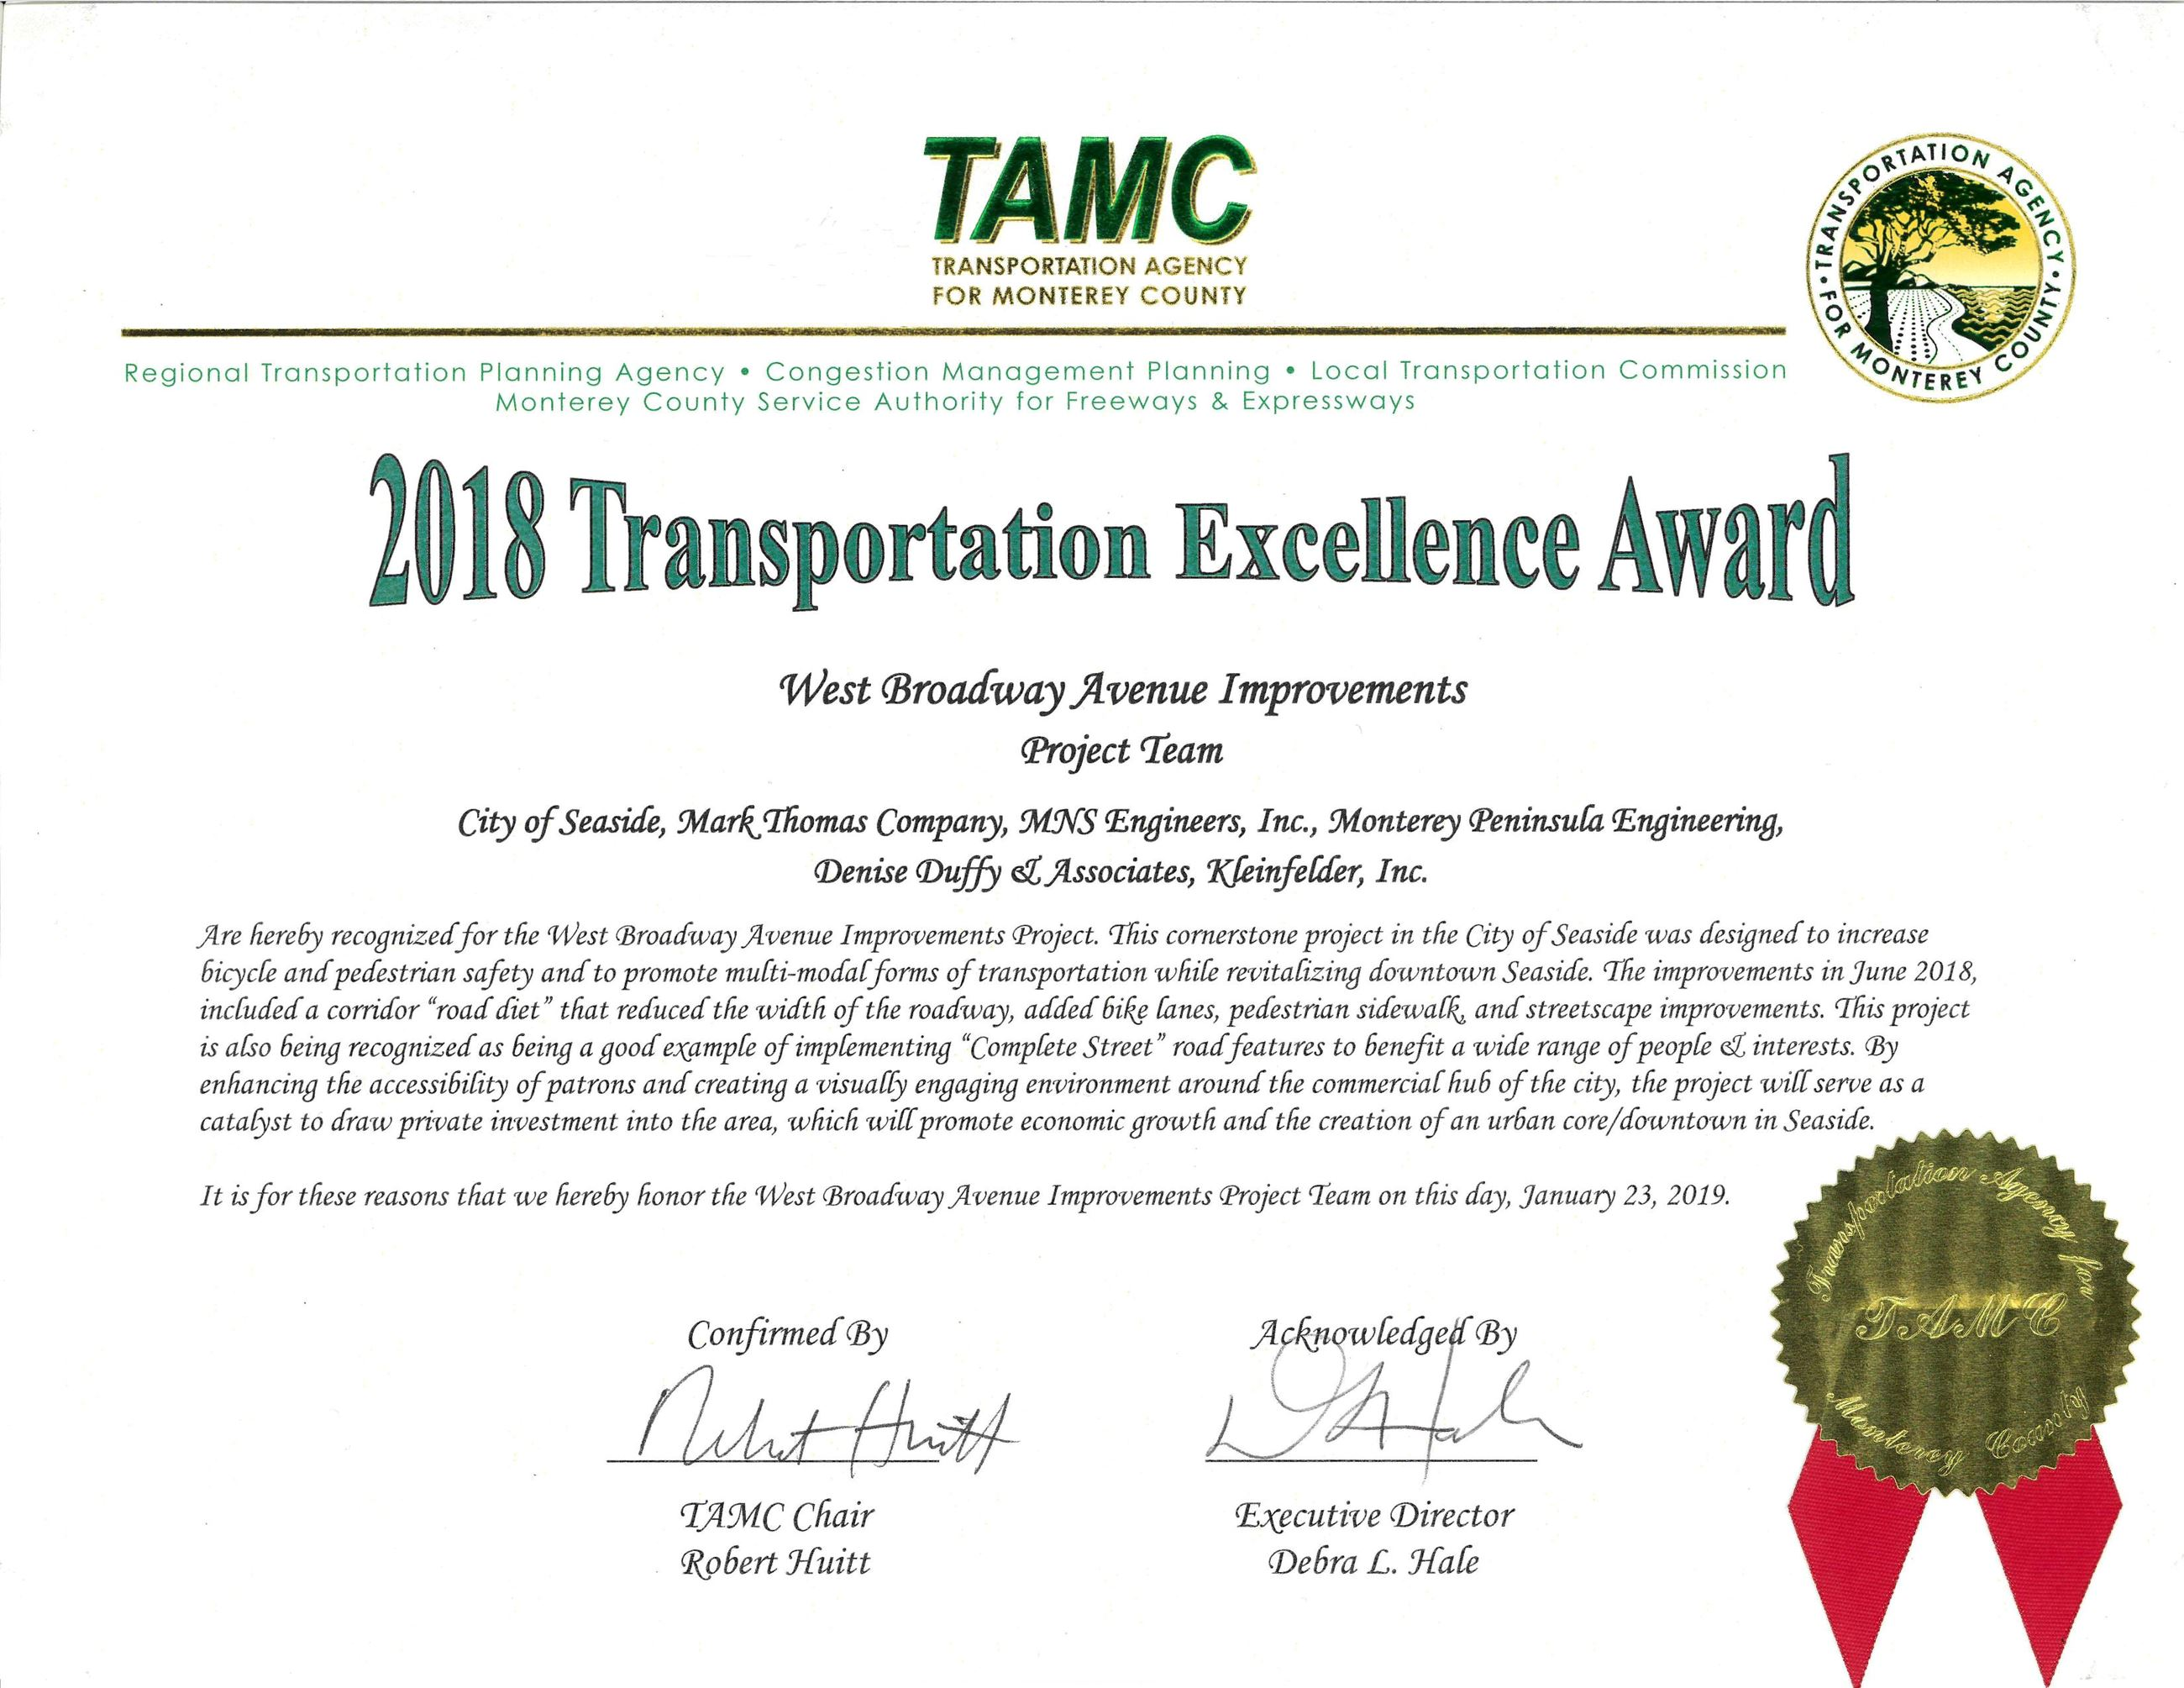 Award for TAMC 2018 Transportation Excellence Project